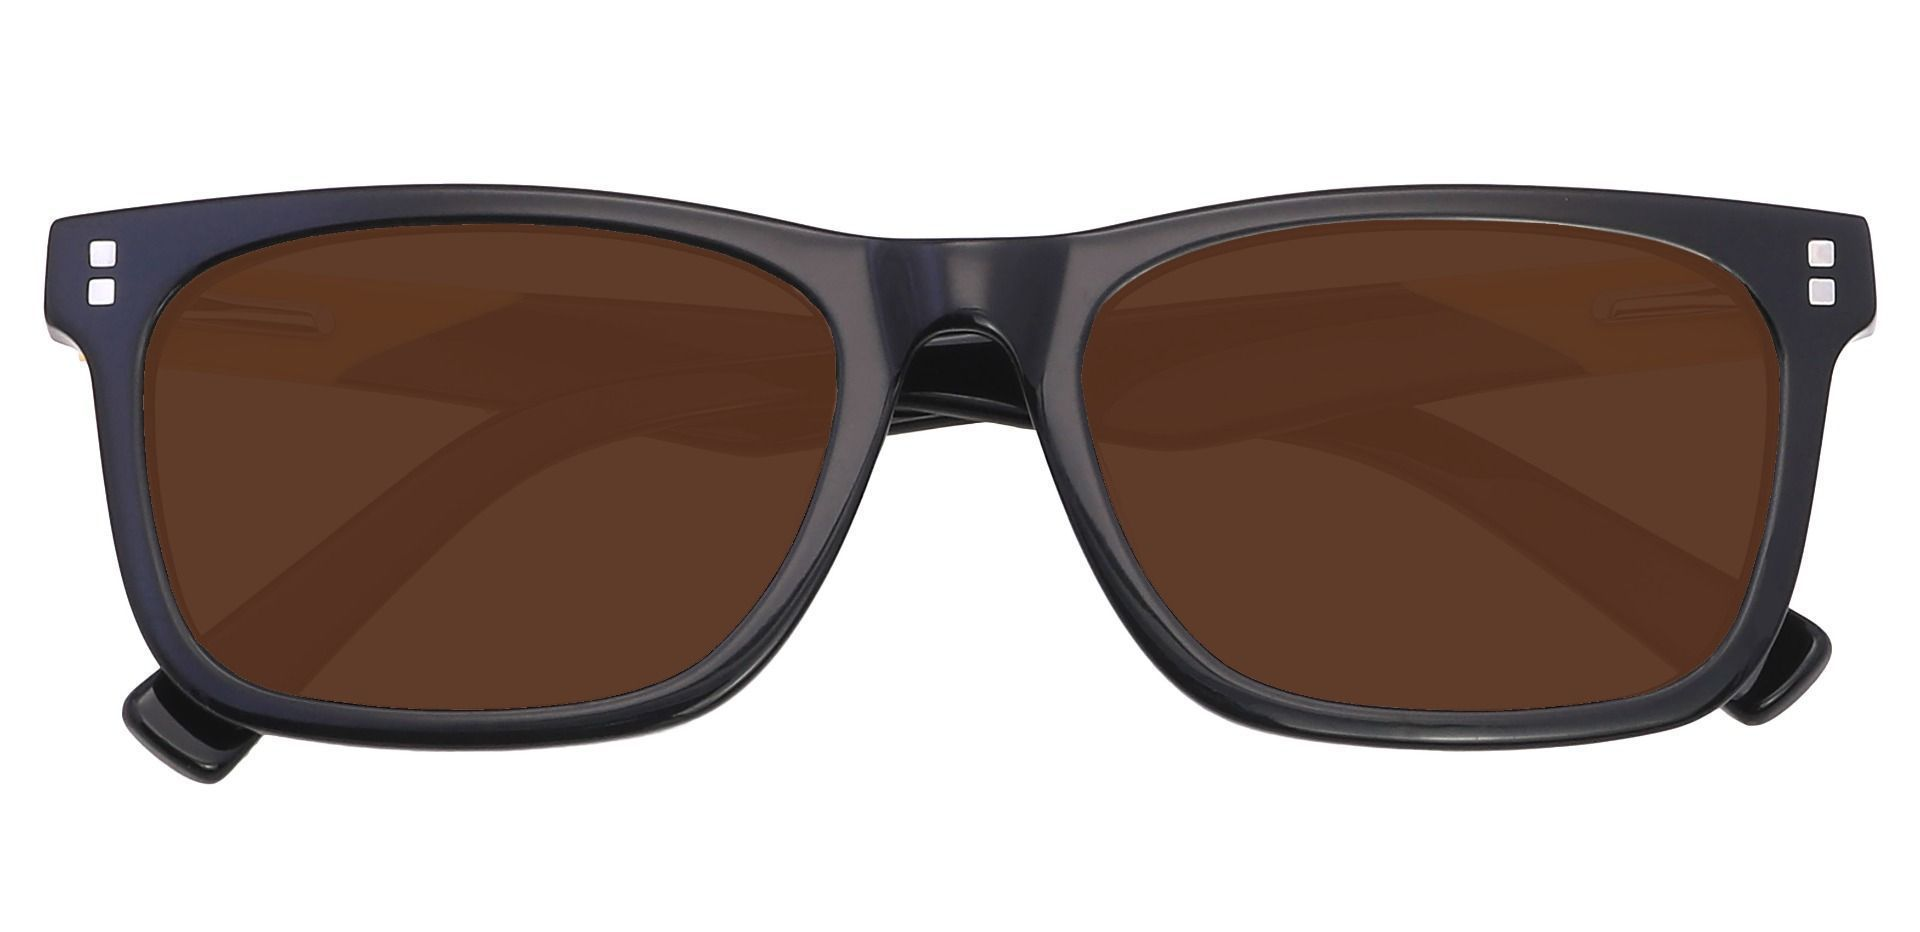 Liberty Rectangle Lined Bifocal Sunglasses - Black Frame With Brown Lenses